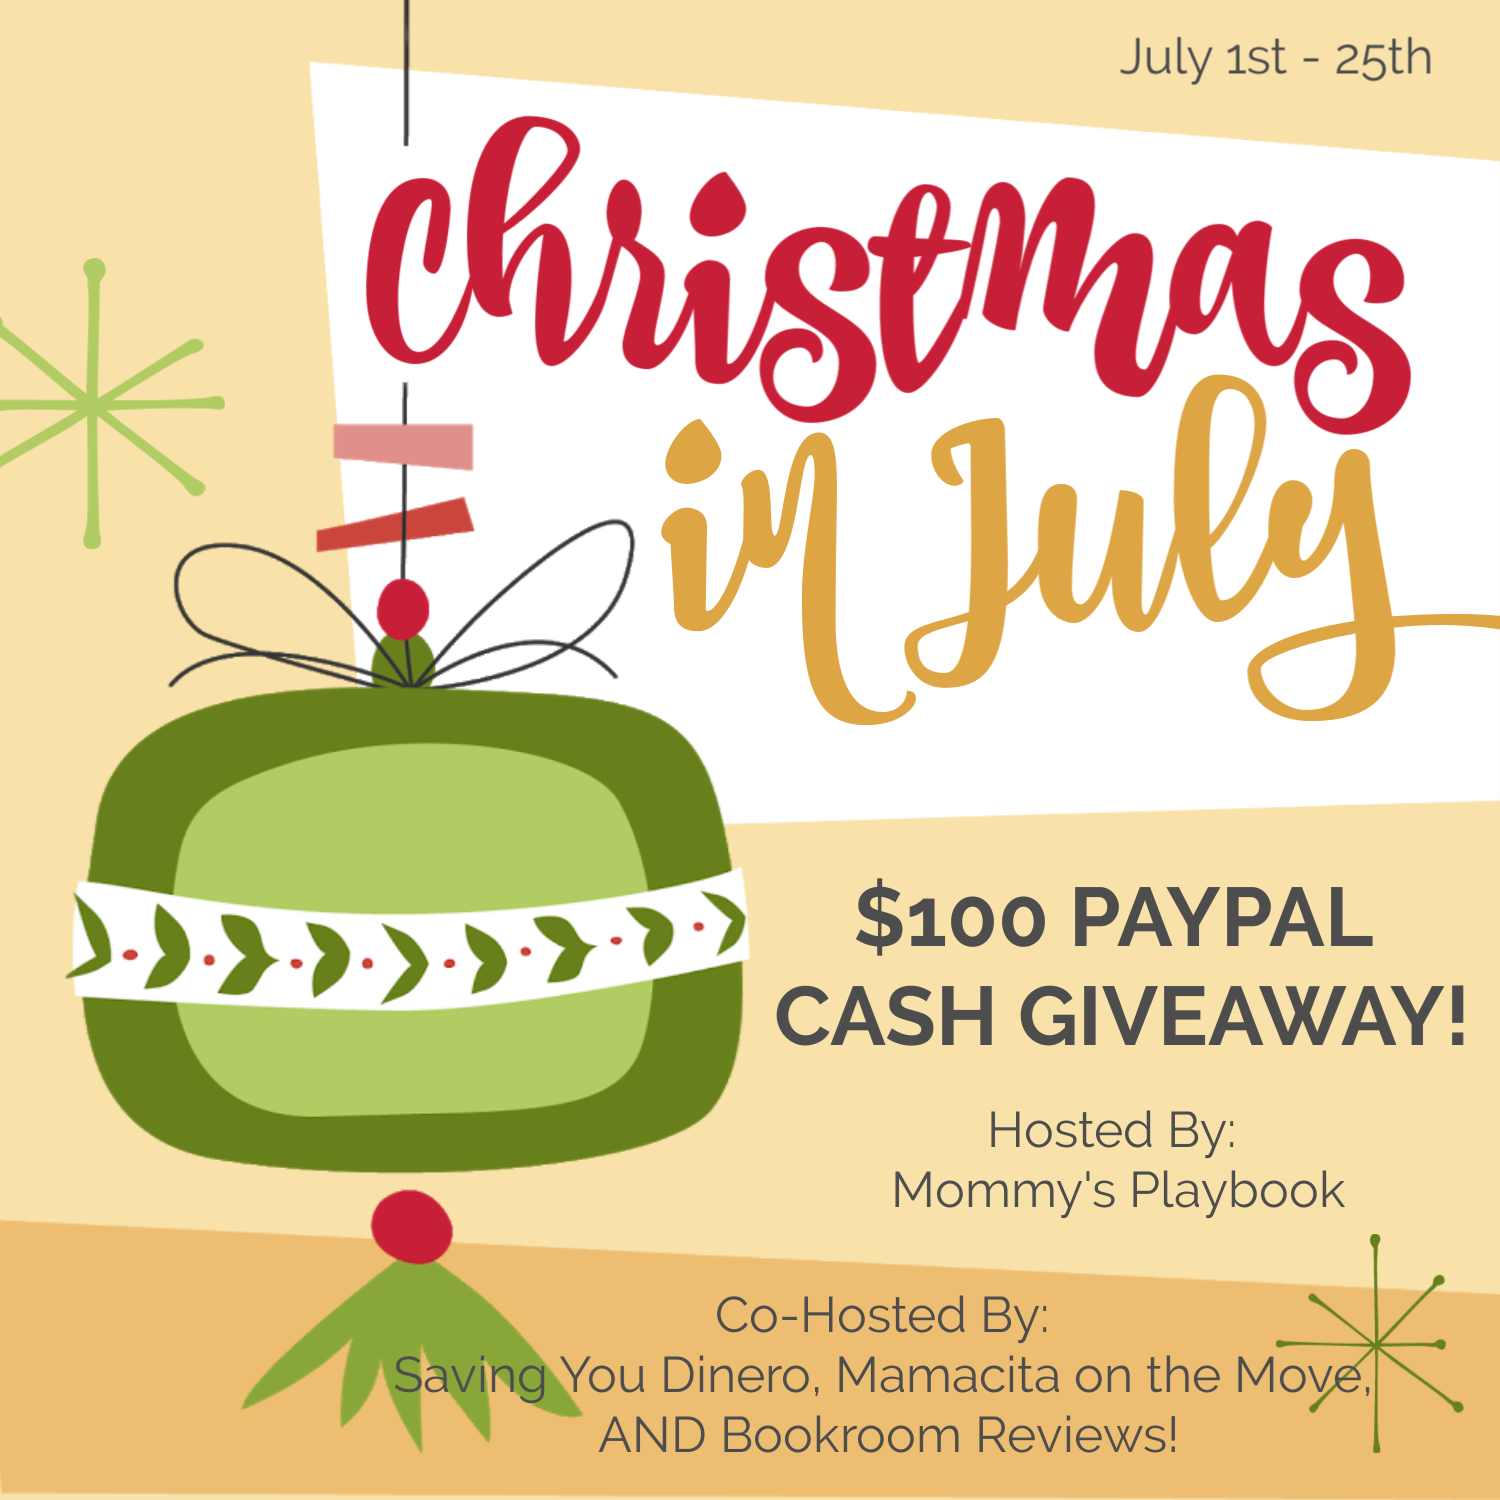 #Win $100 PayPal CASH! #ChristmasinJuly US, ends 7/25